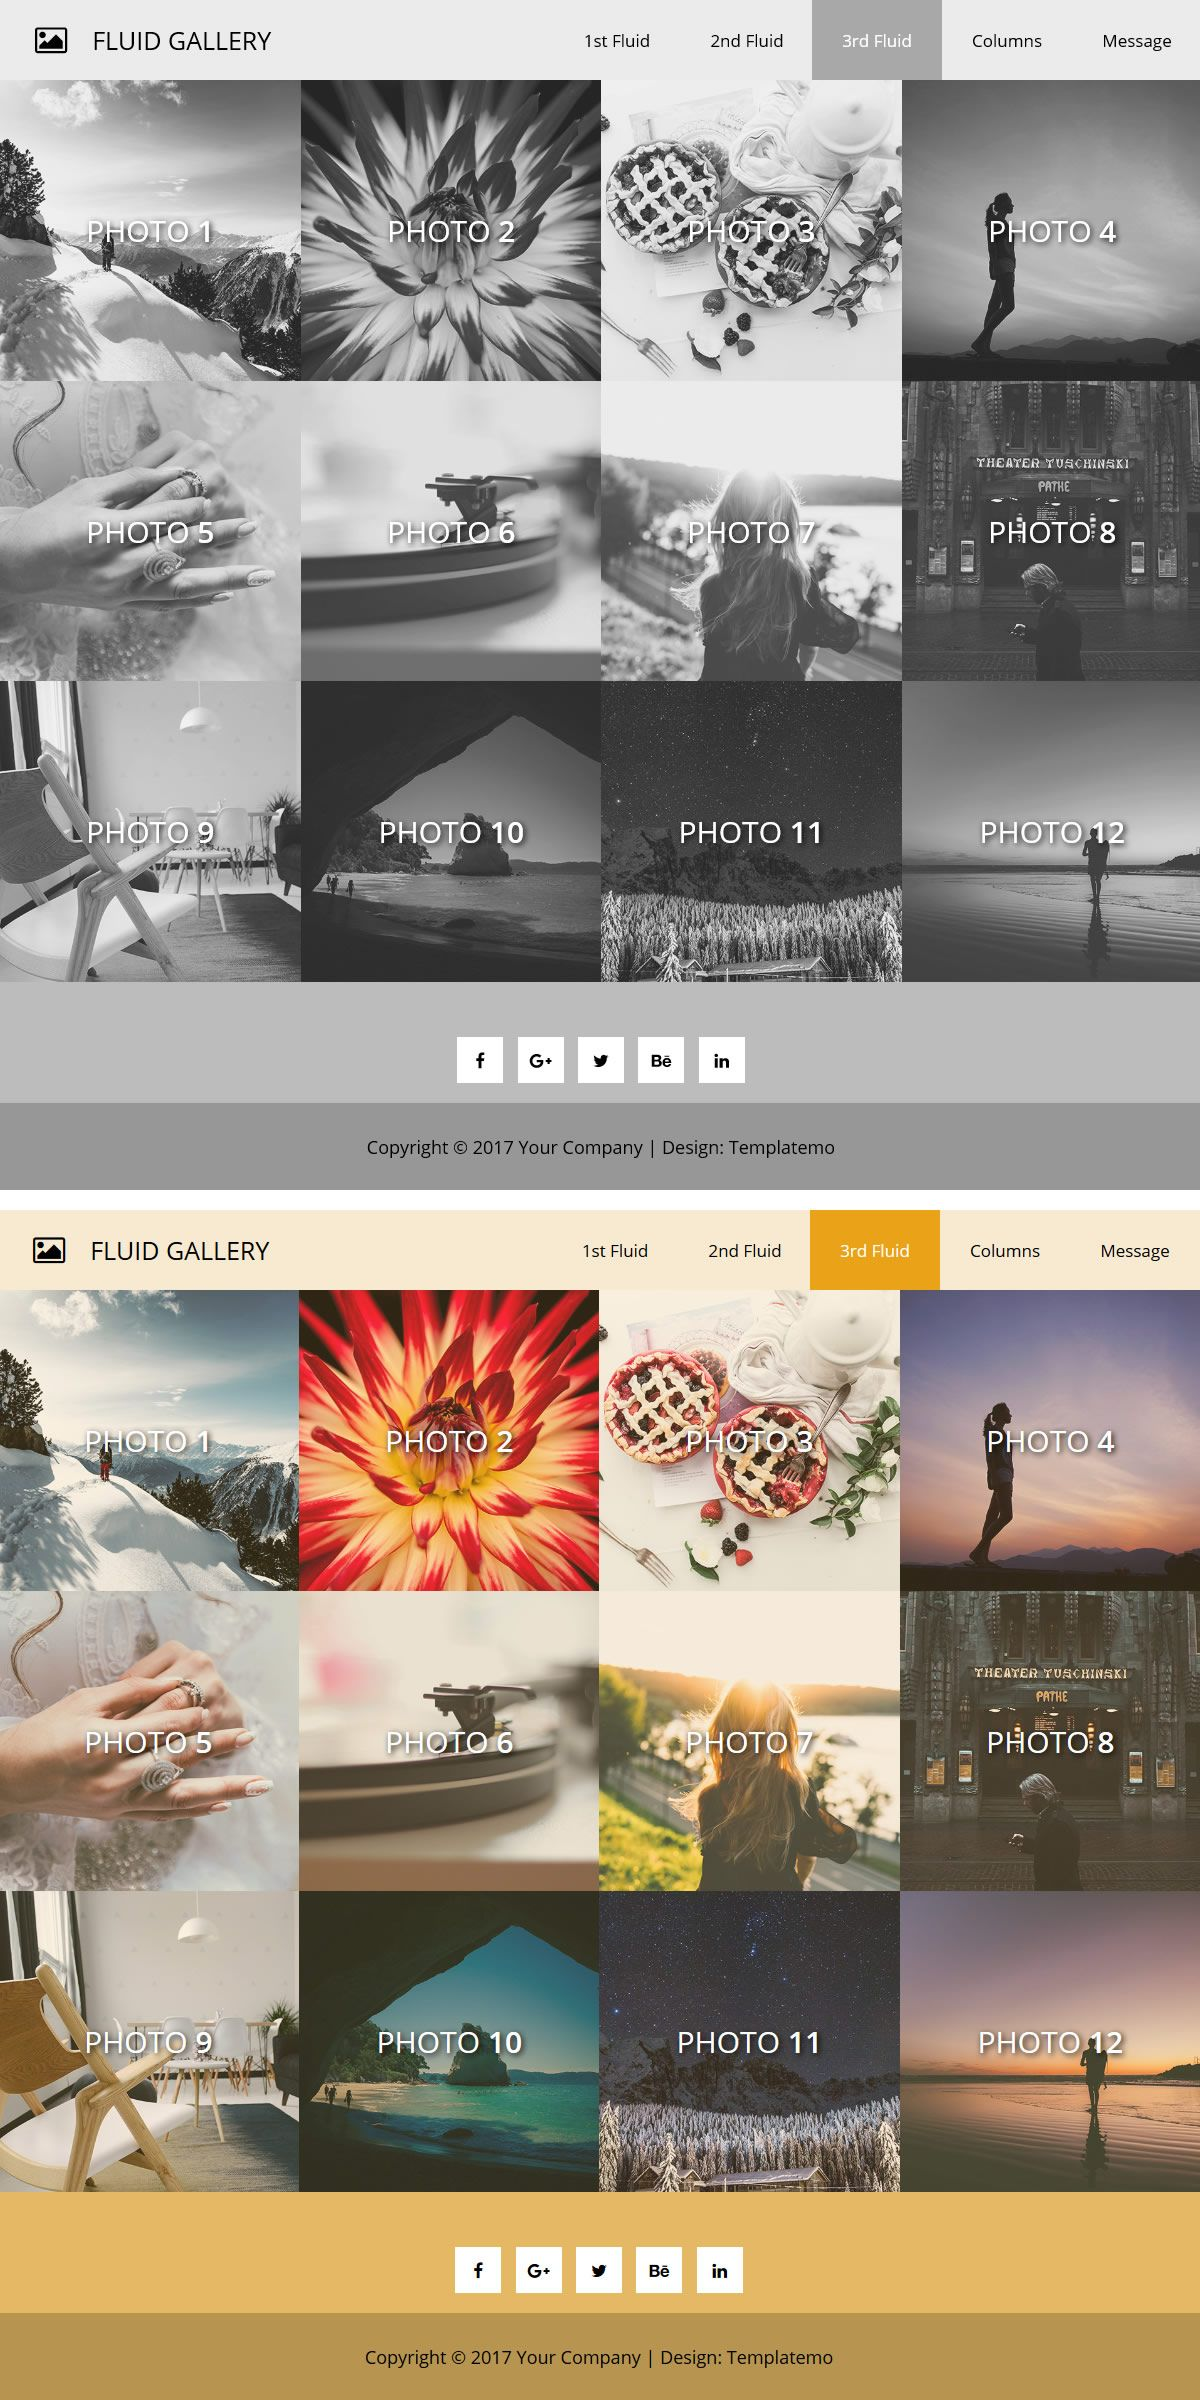 Full Width Image Gallery Html5 Css3 Bootstrap Layout For Responsiveness And Mobile In 2021 Baby Boy Shower Favors Cute Instagram Captions Baby Shower Cakes For Boys